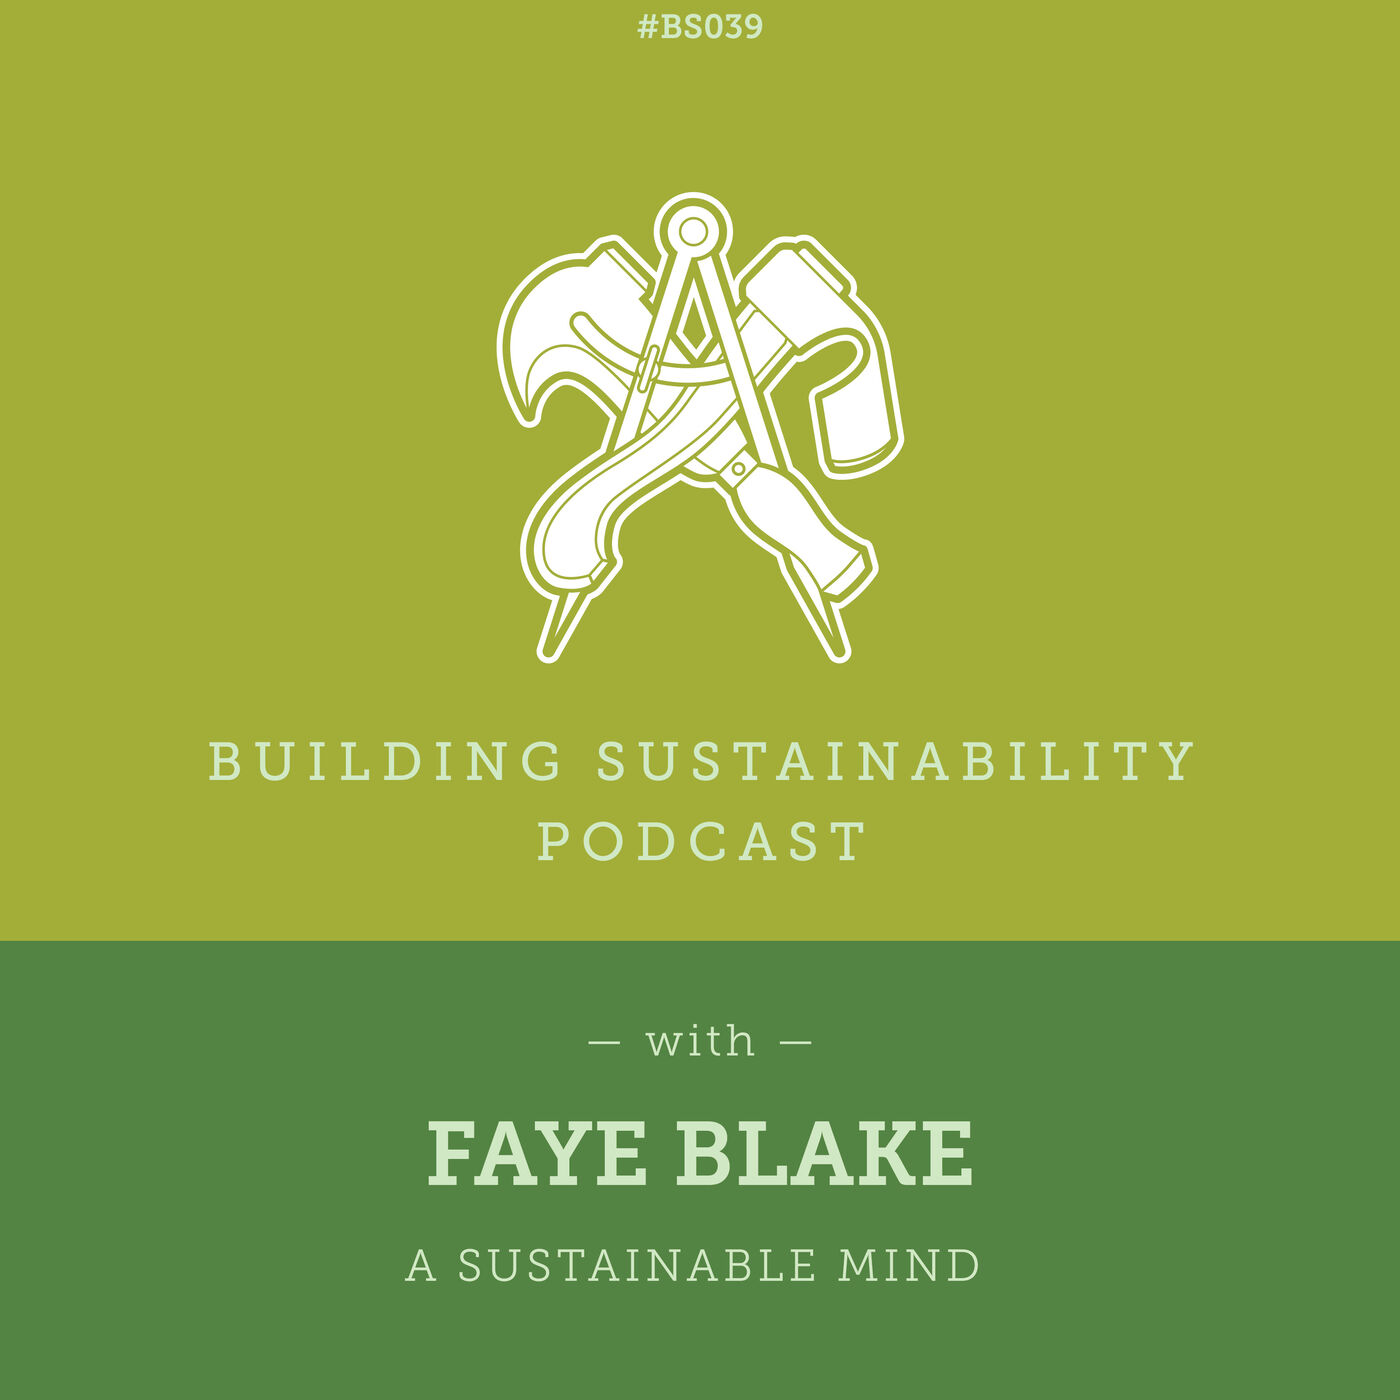 Ayurveda, how to create a Sustainable Self - Faye Blake  - BS039